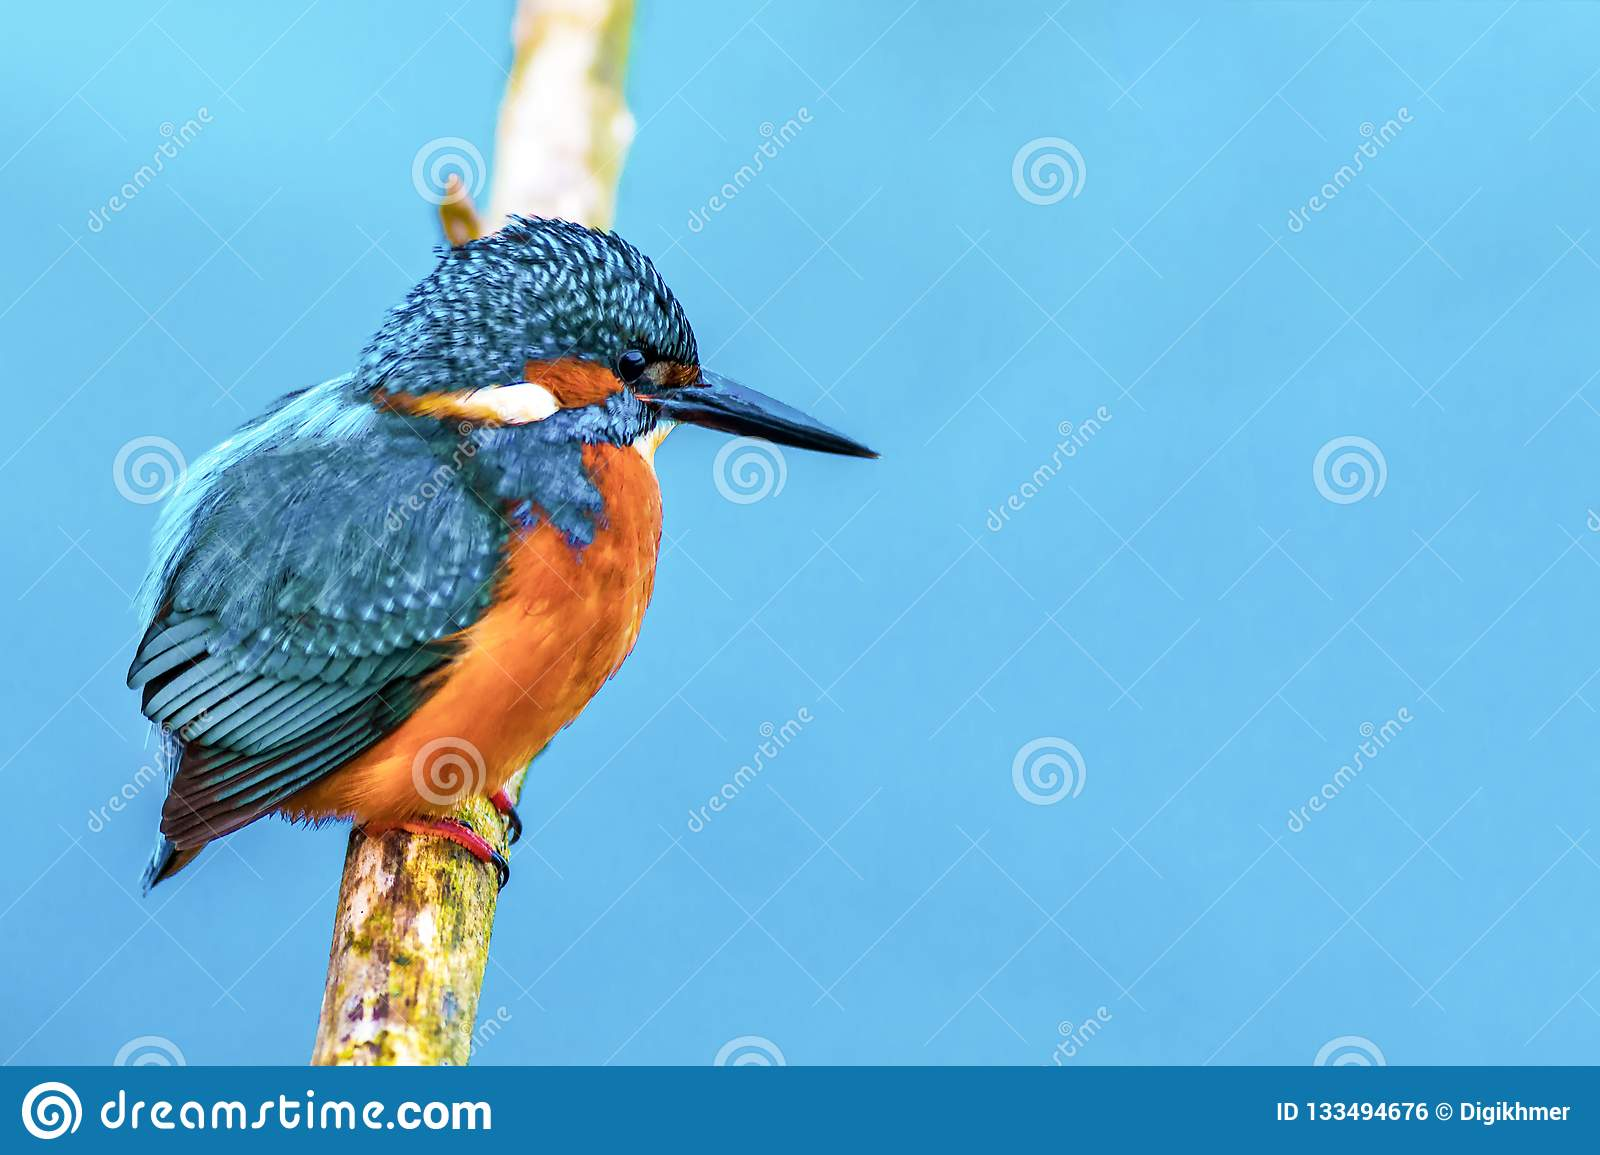 King fisher bird on a branch